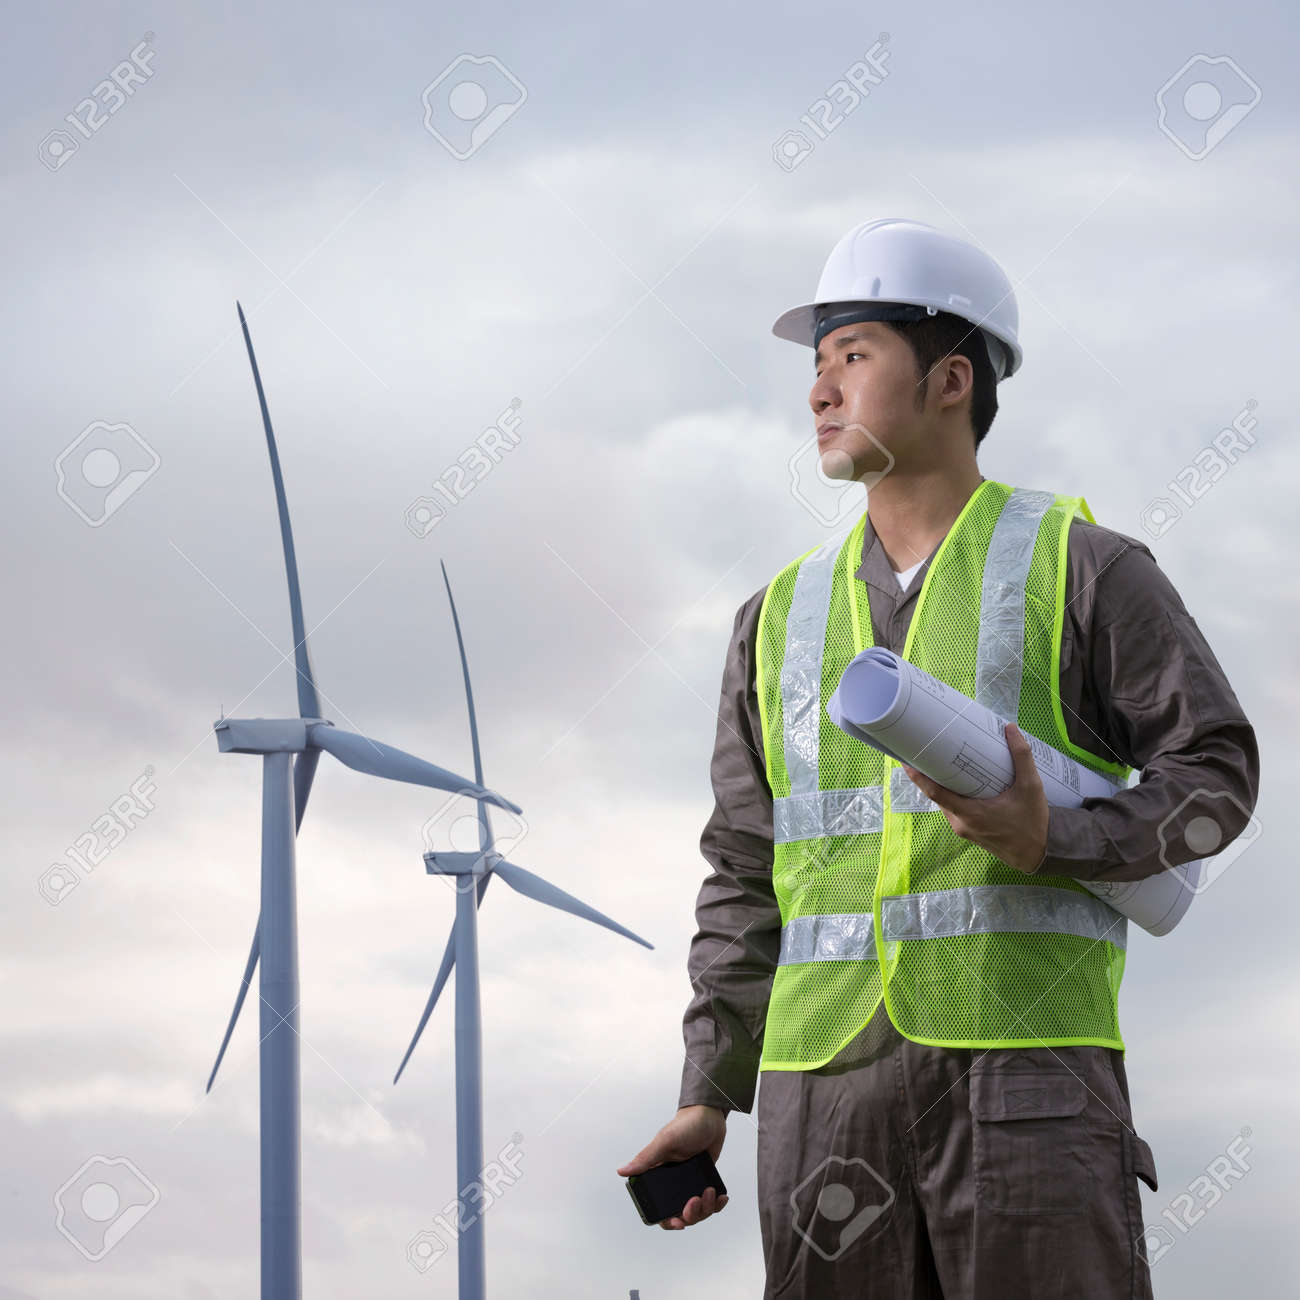 Portrait of a male Chinese industrial engineer at work checking winturbines Stock Photo - 28193032